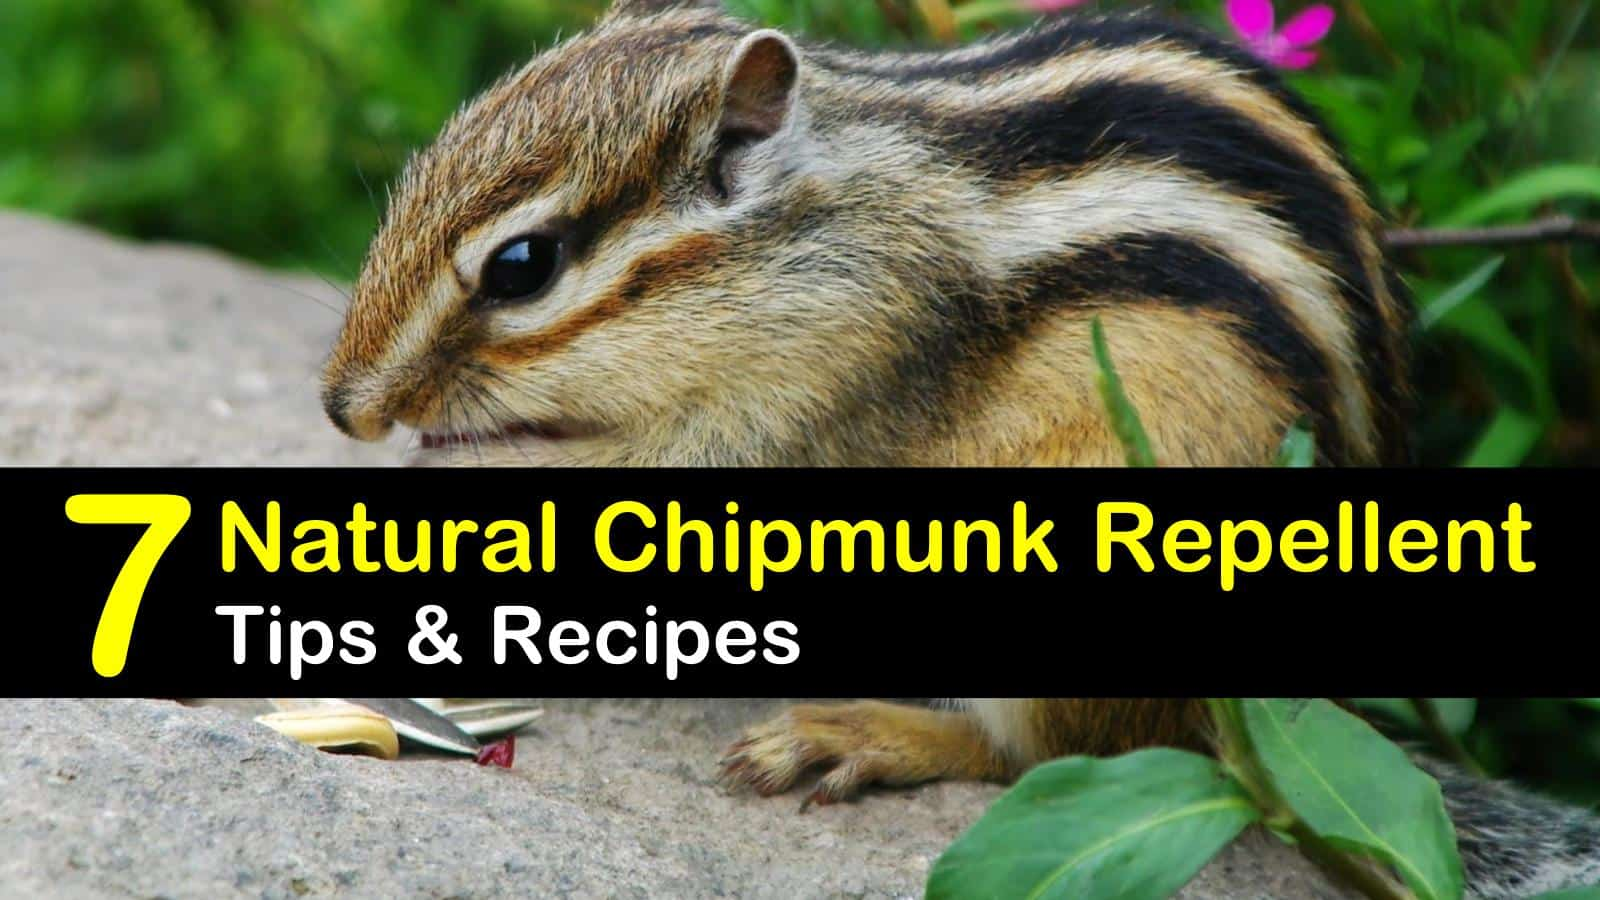 natural chipmunk repellent titleimg1